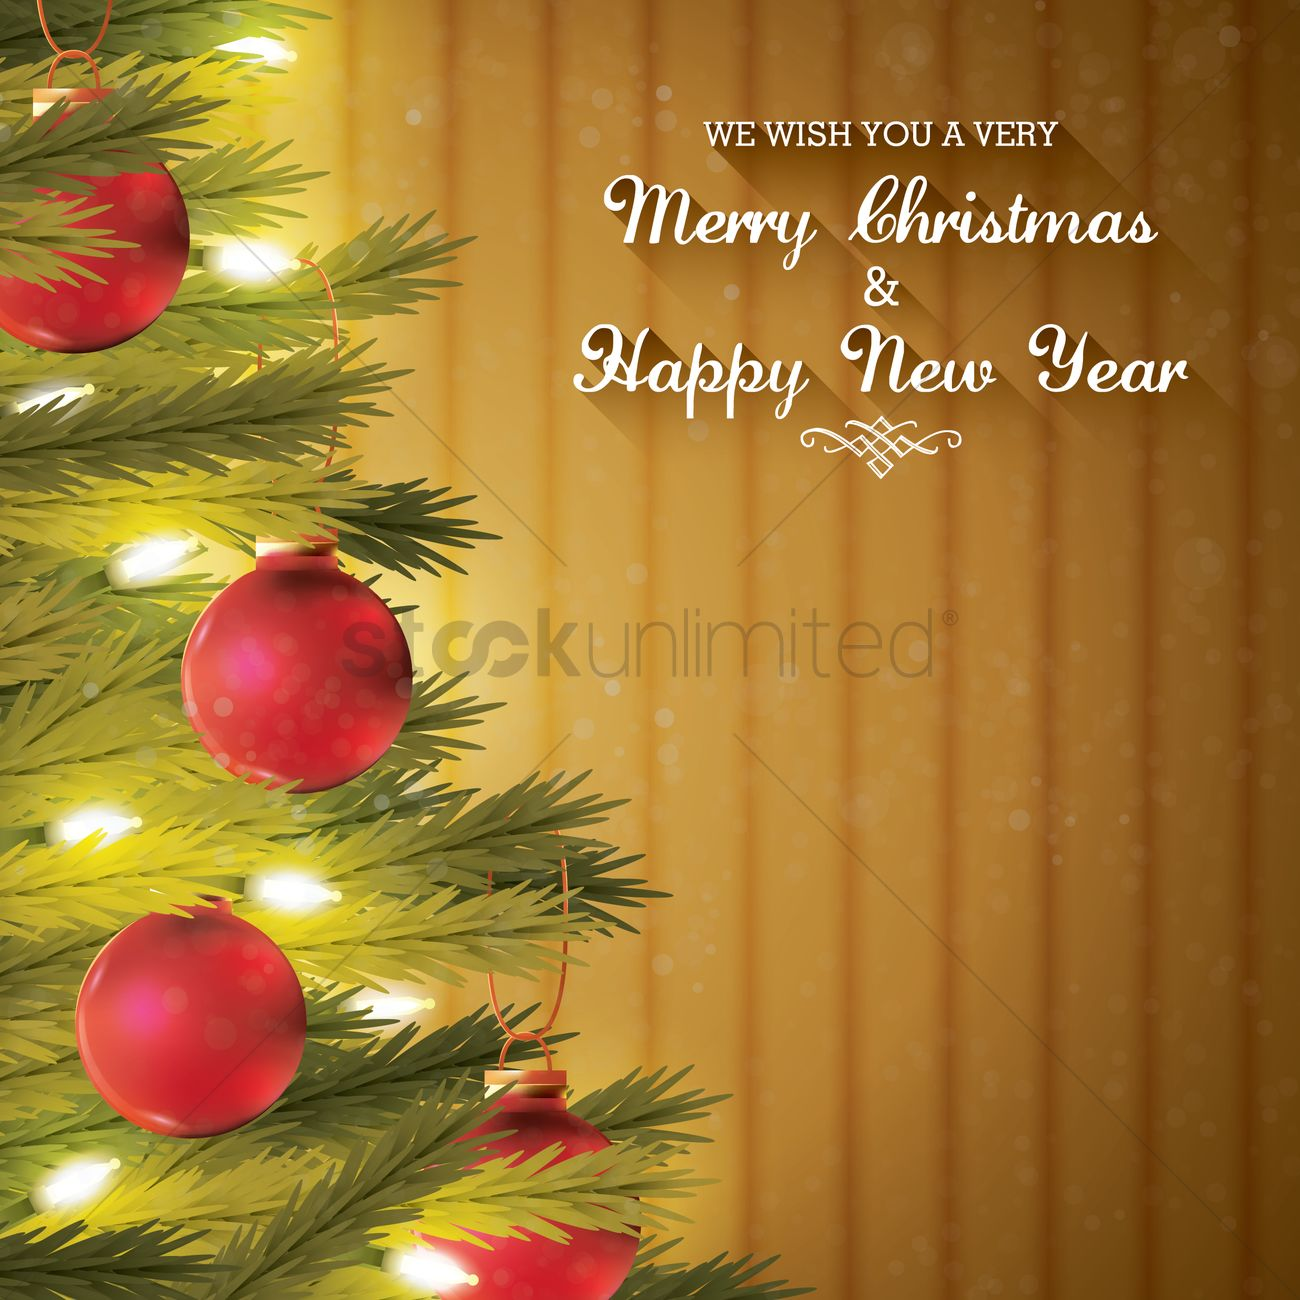 Christmas and new year greetings vector image 1626365 stockunlimited christmas and new year greetings vector graphic m4hsunfo